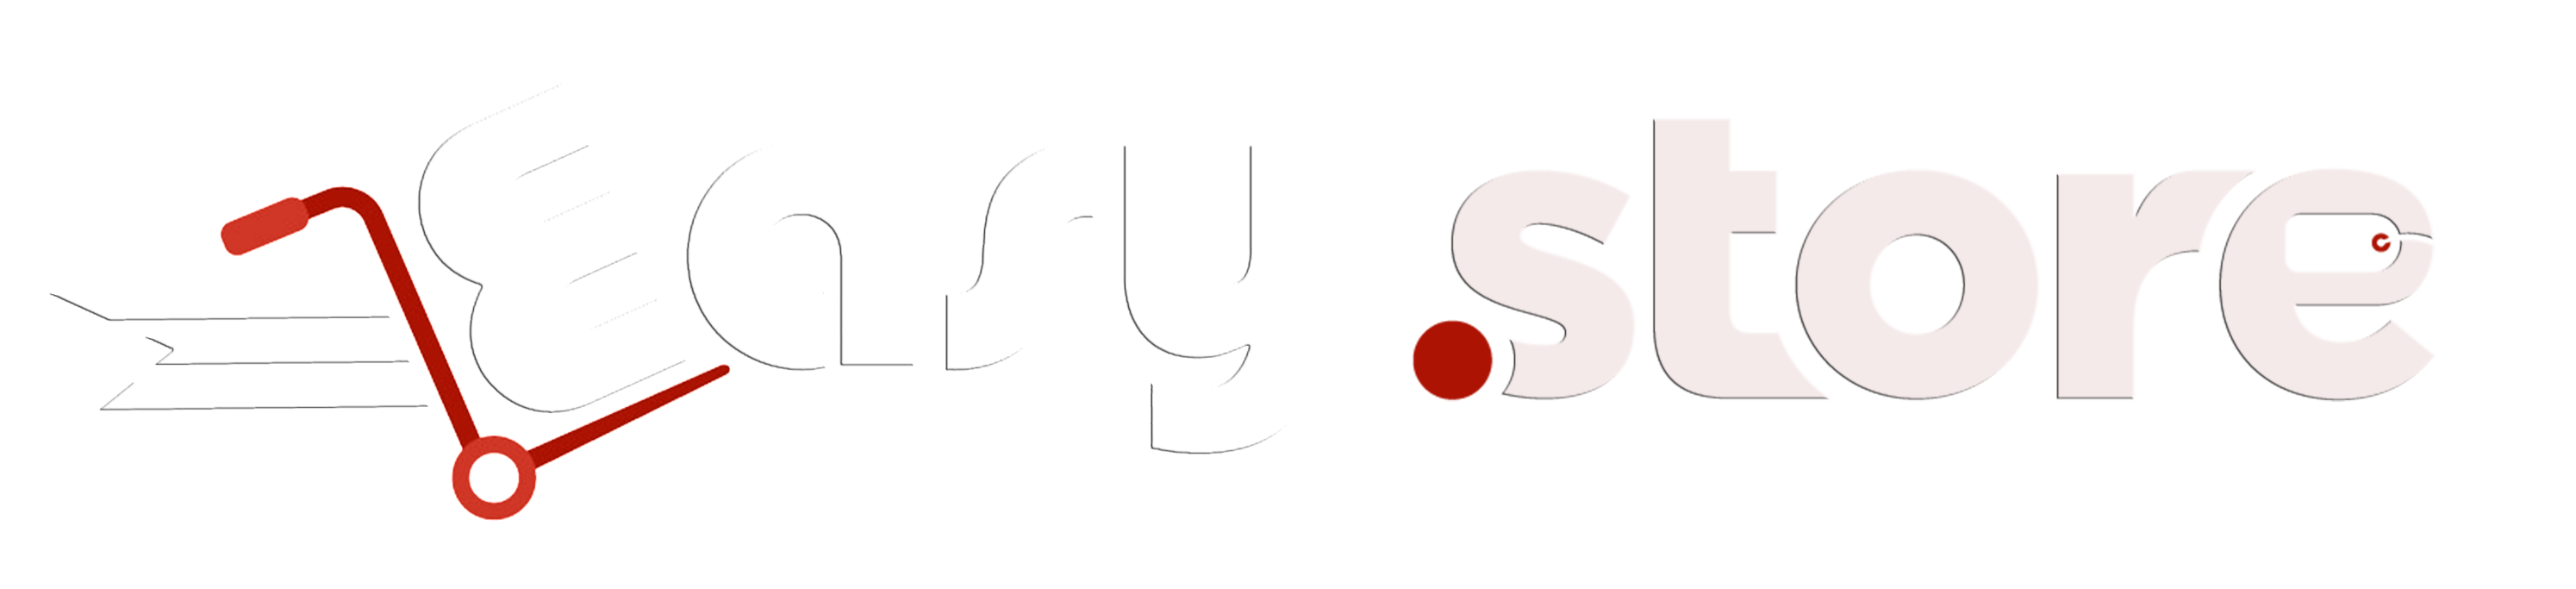 easy store logo2.png